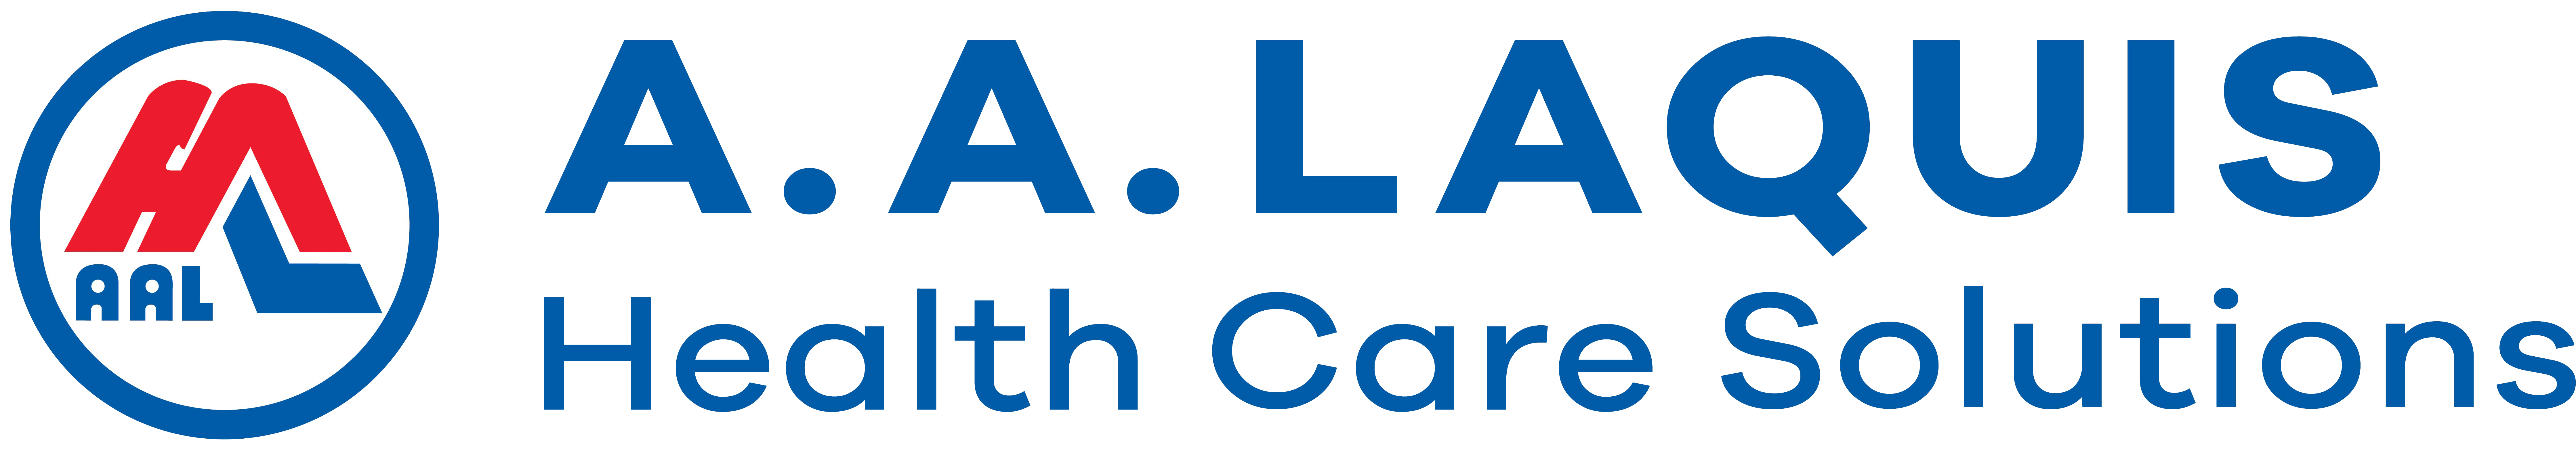 AA Laquis Healthcare Solutions